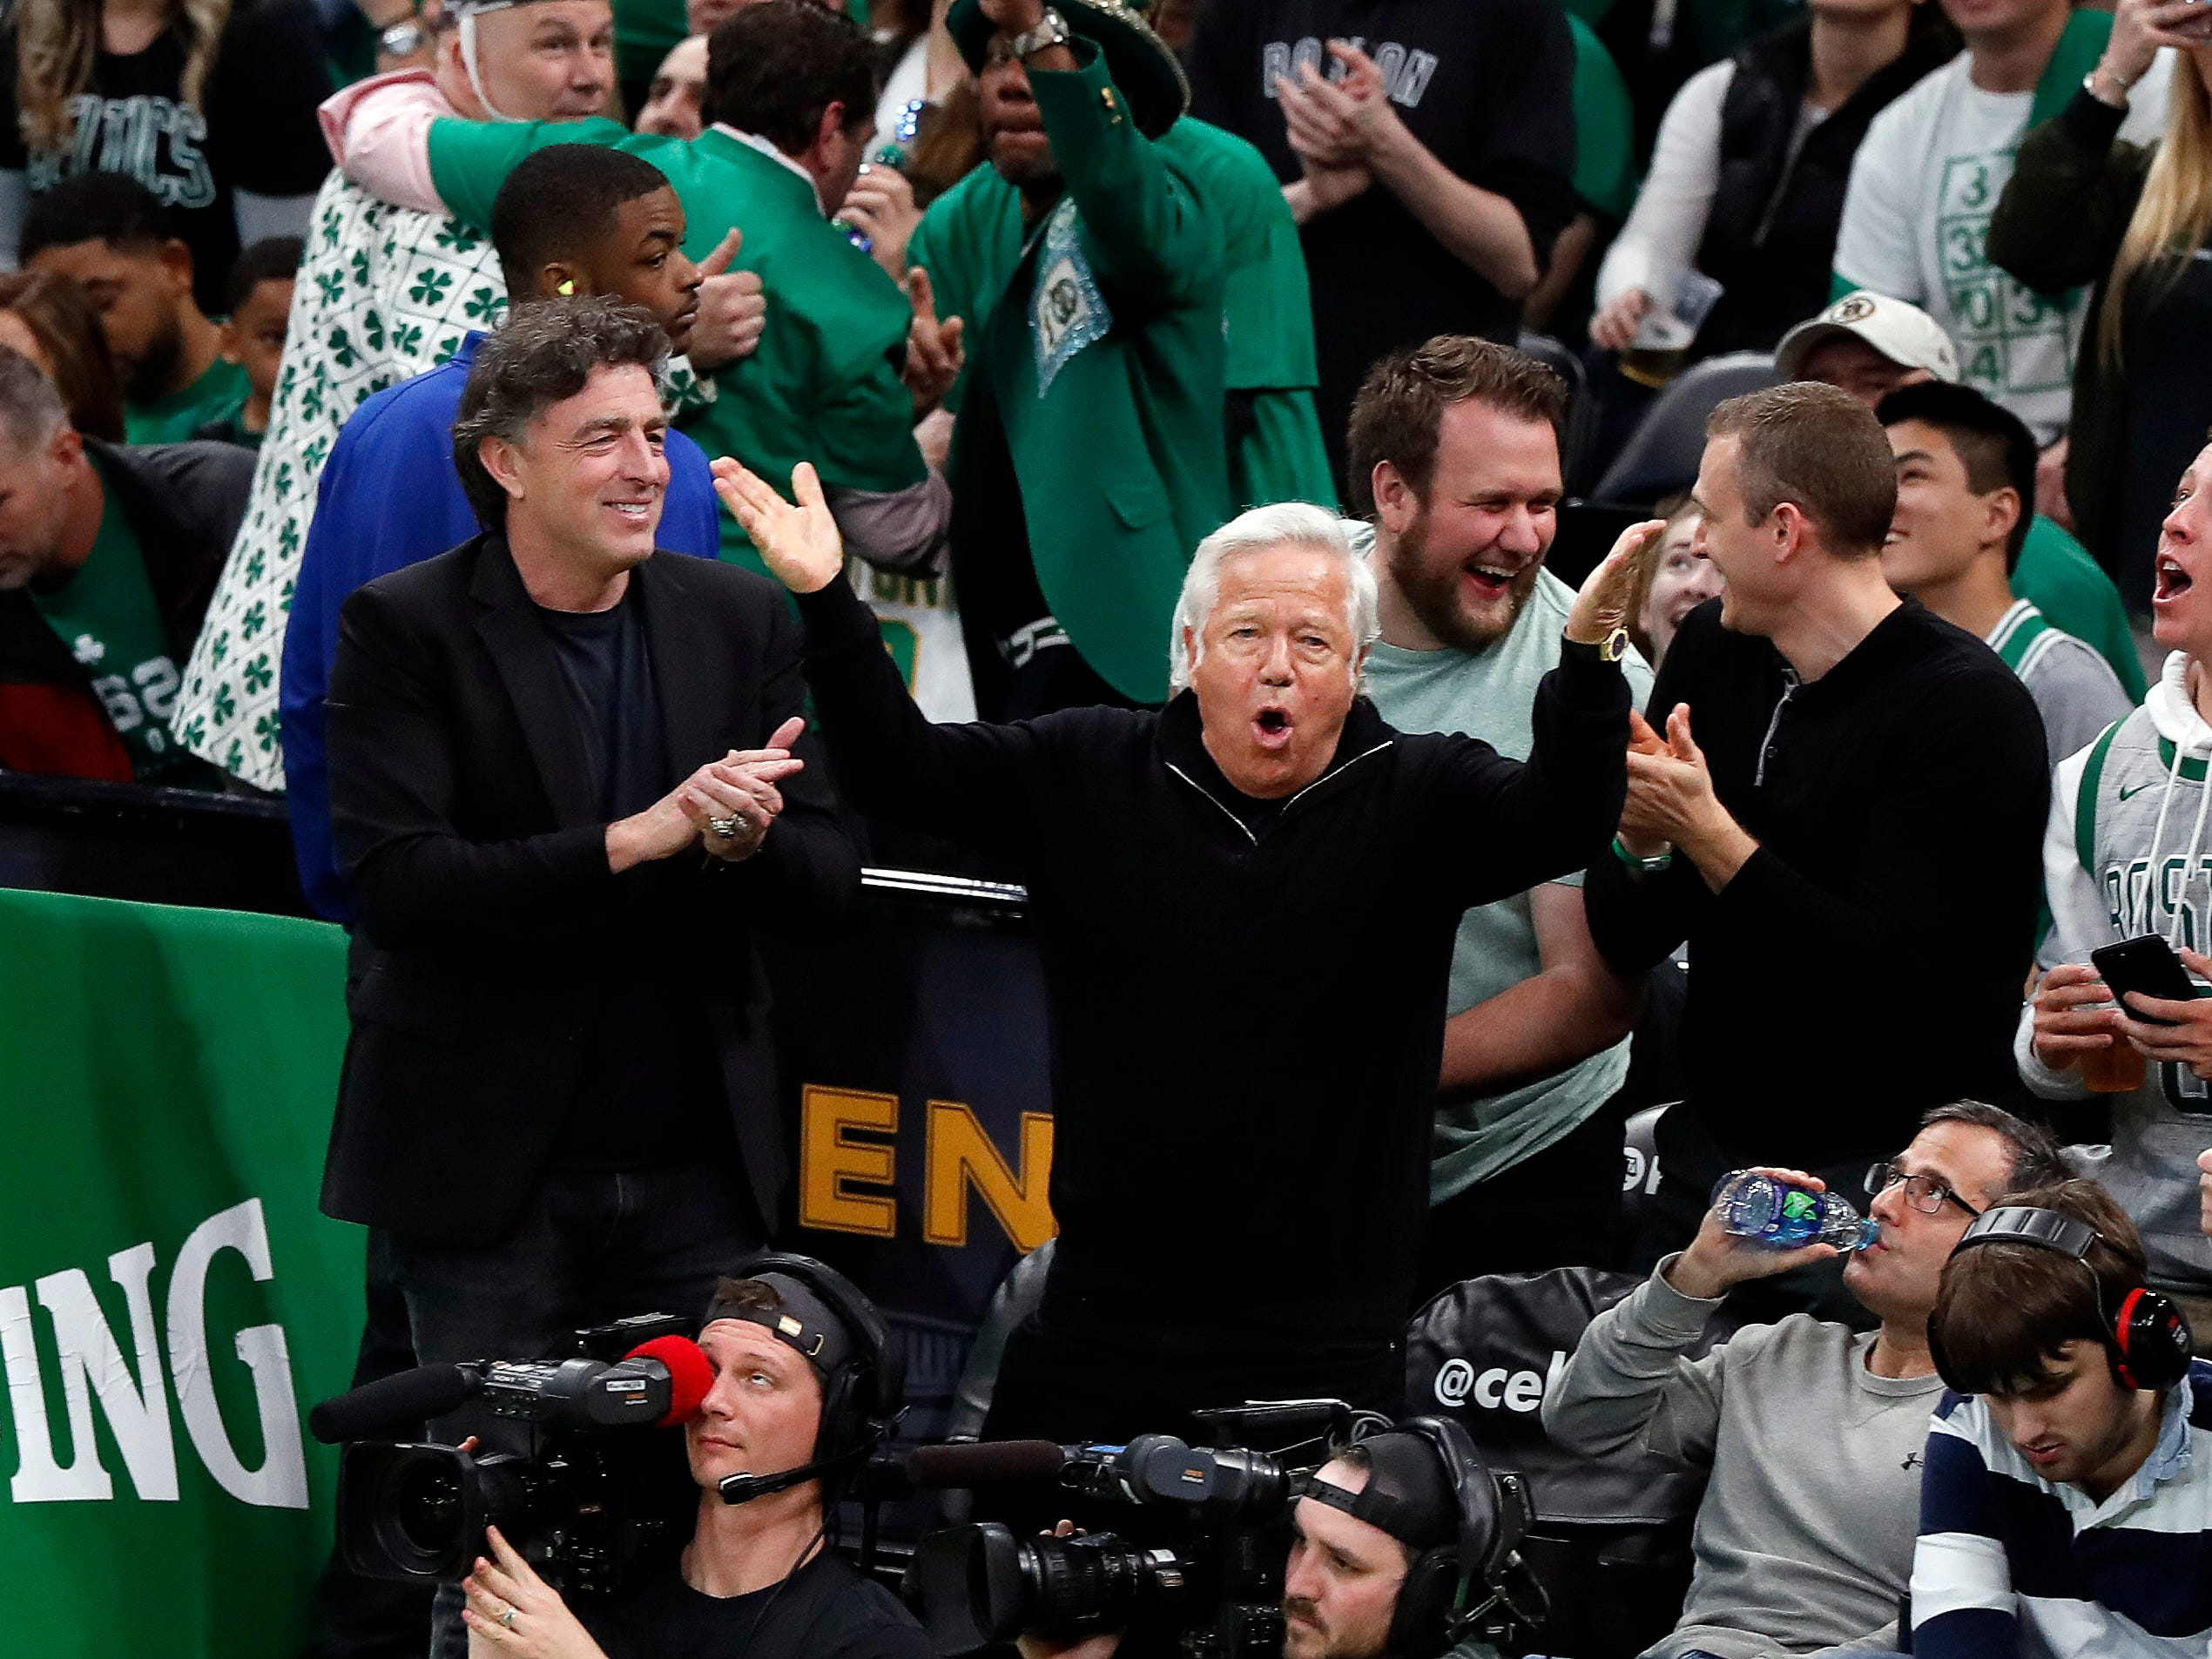 New England Patriots owner Robert Kraft, center, cheers on the Boston Celtics with Celtics owner Wyc Grousbeck, left, during the third quarter in Game 1 of a first-round NBA basketball playoff series between the Celtics and the Indiana Pacers, Sunday, April 14, 2019, in Boston.